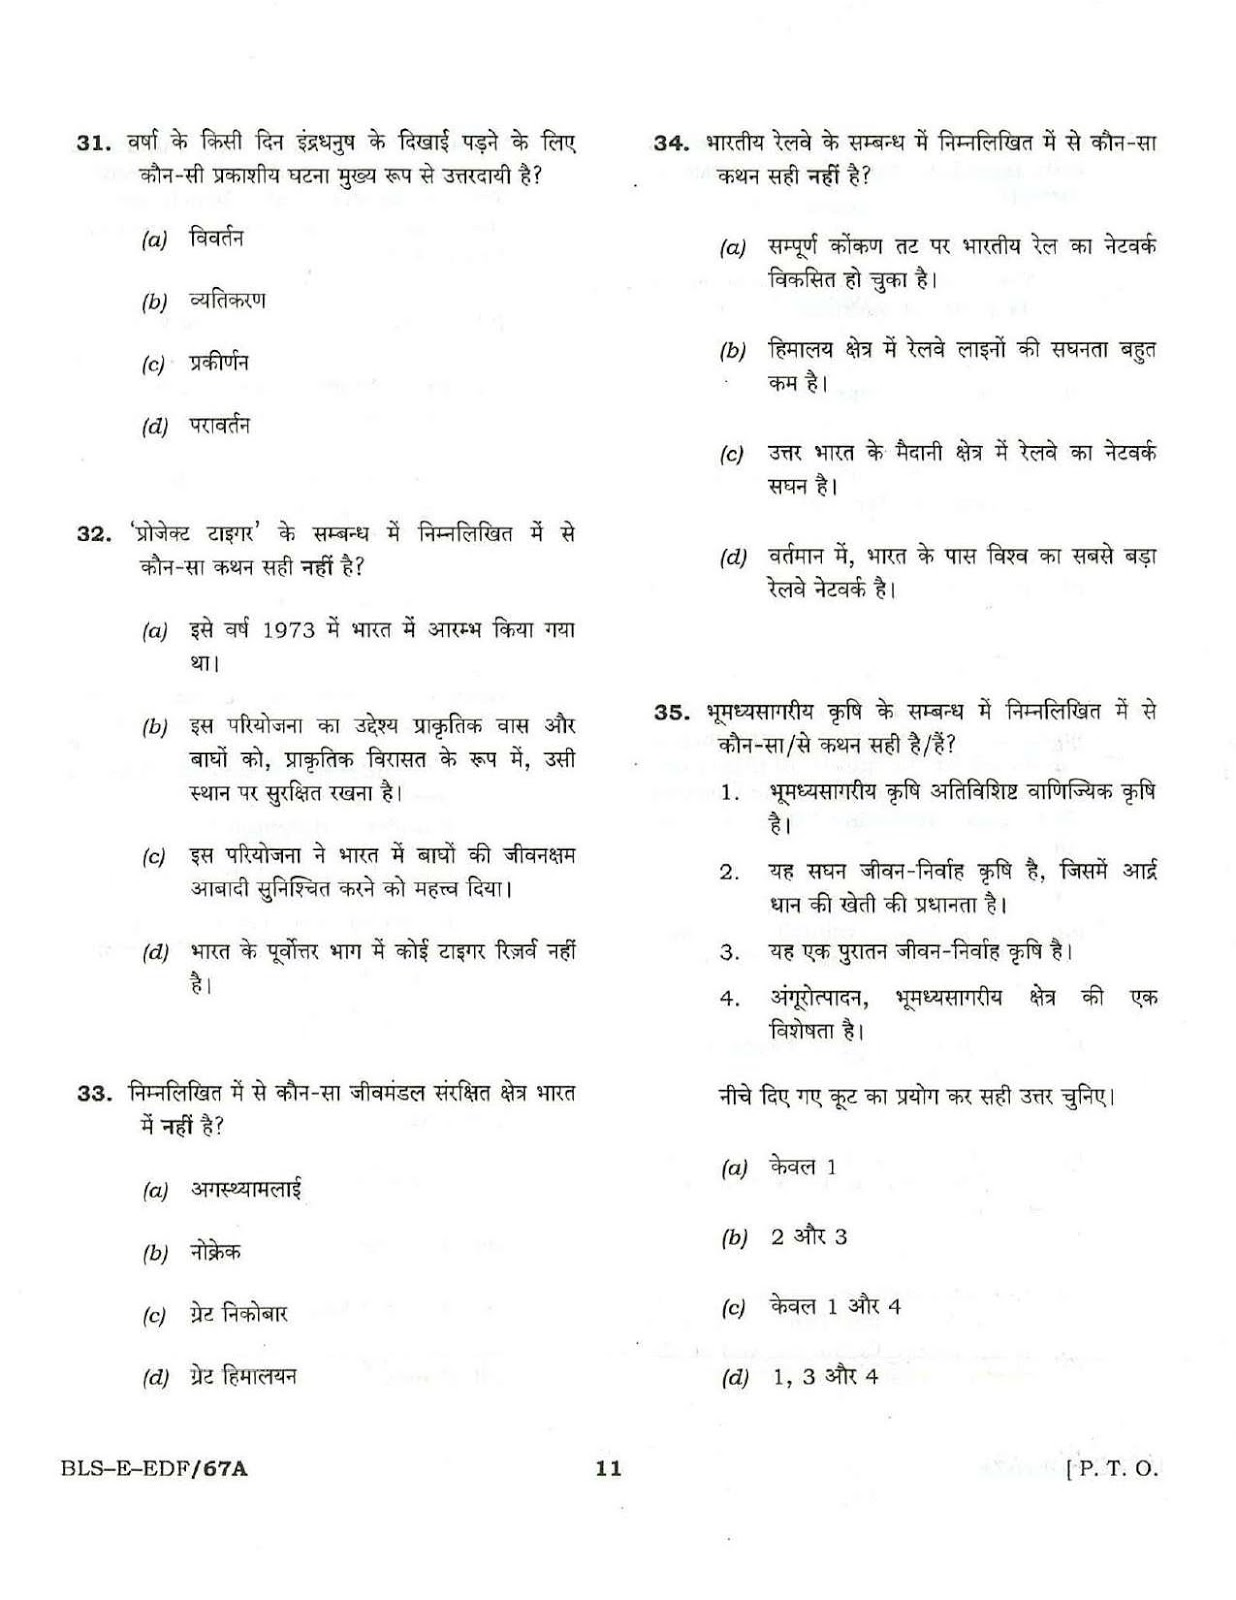 UPSC CDS I 2017 General Knowledge question paper